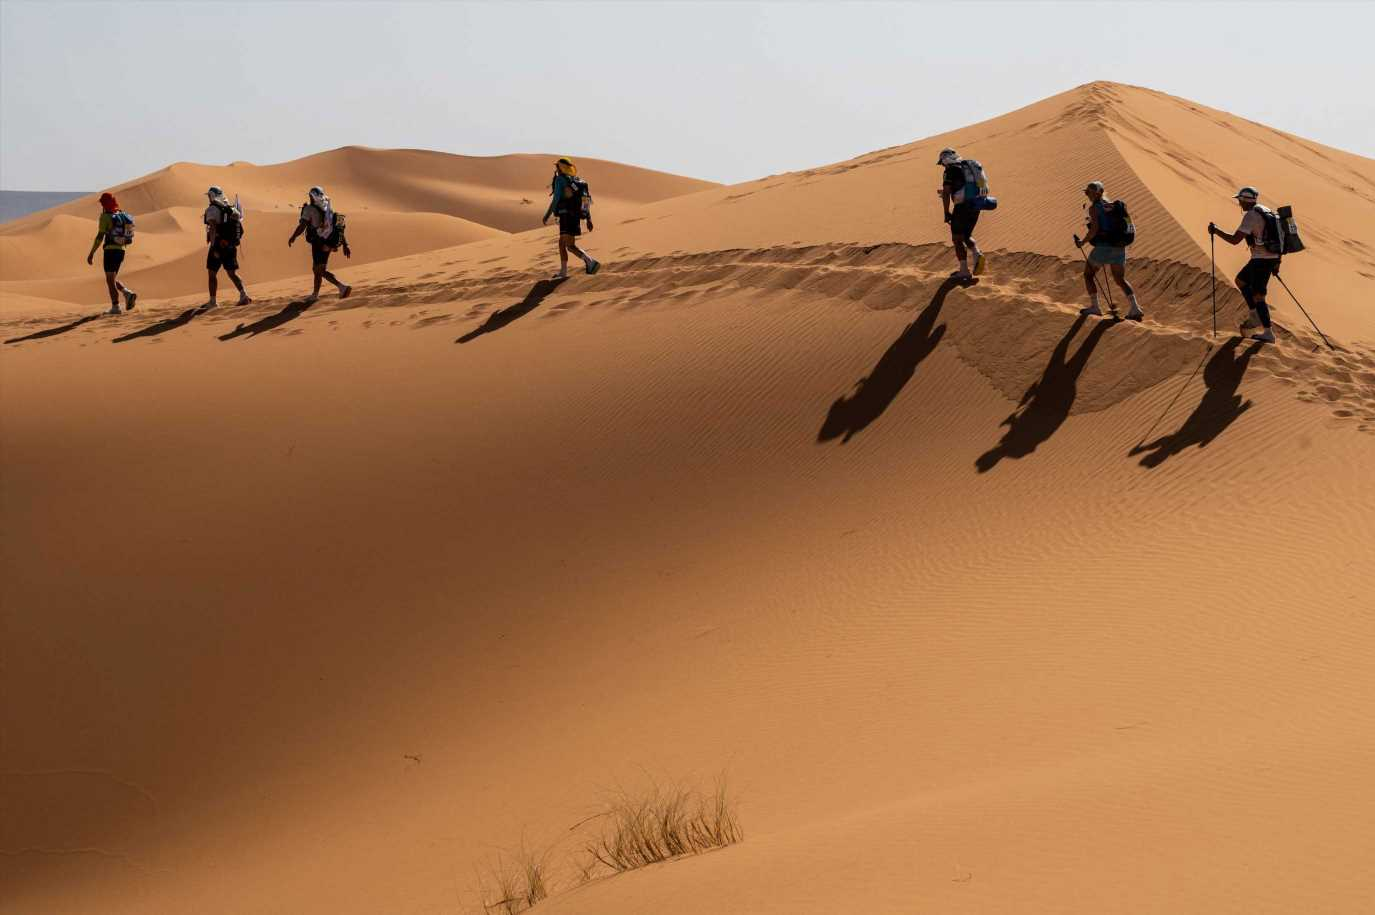 Runner in his 50s dies during gruelling Sahara Desert race – known as toughest on earth – after suffering cardiac arrest